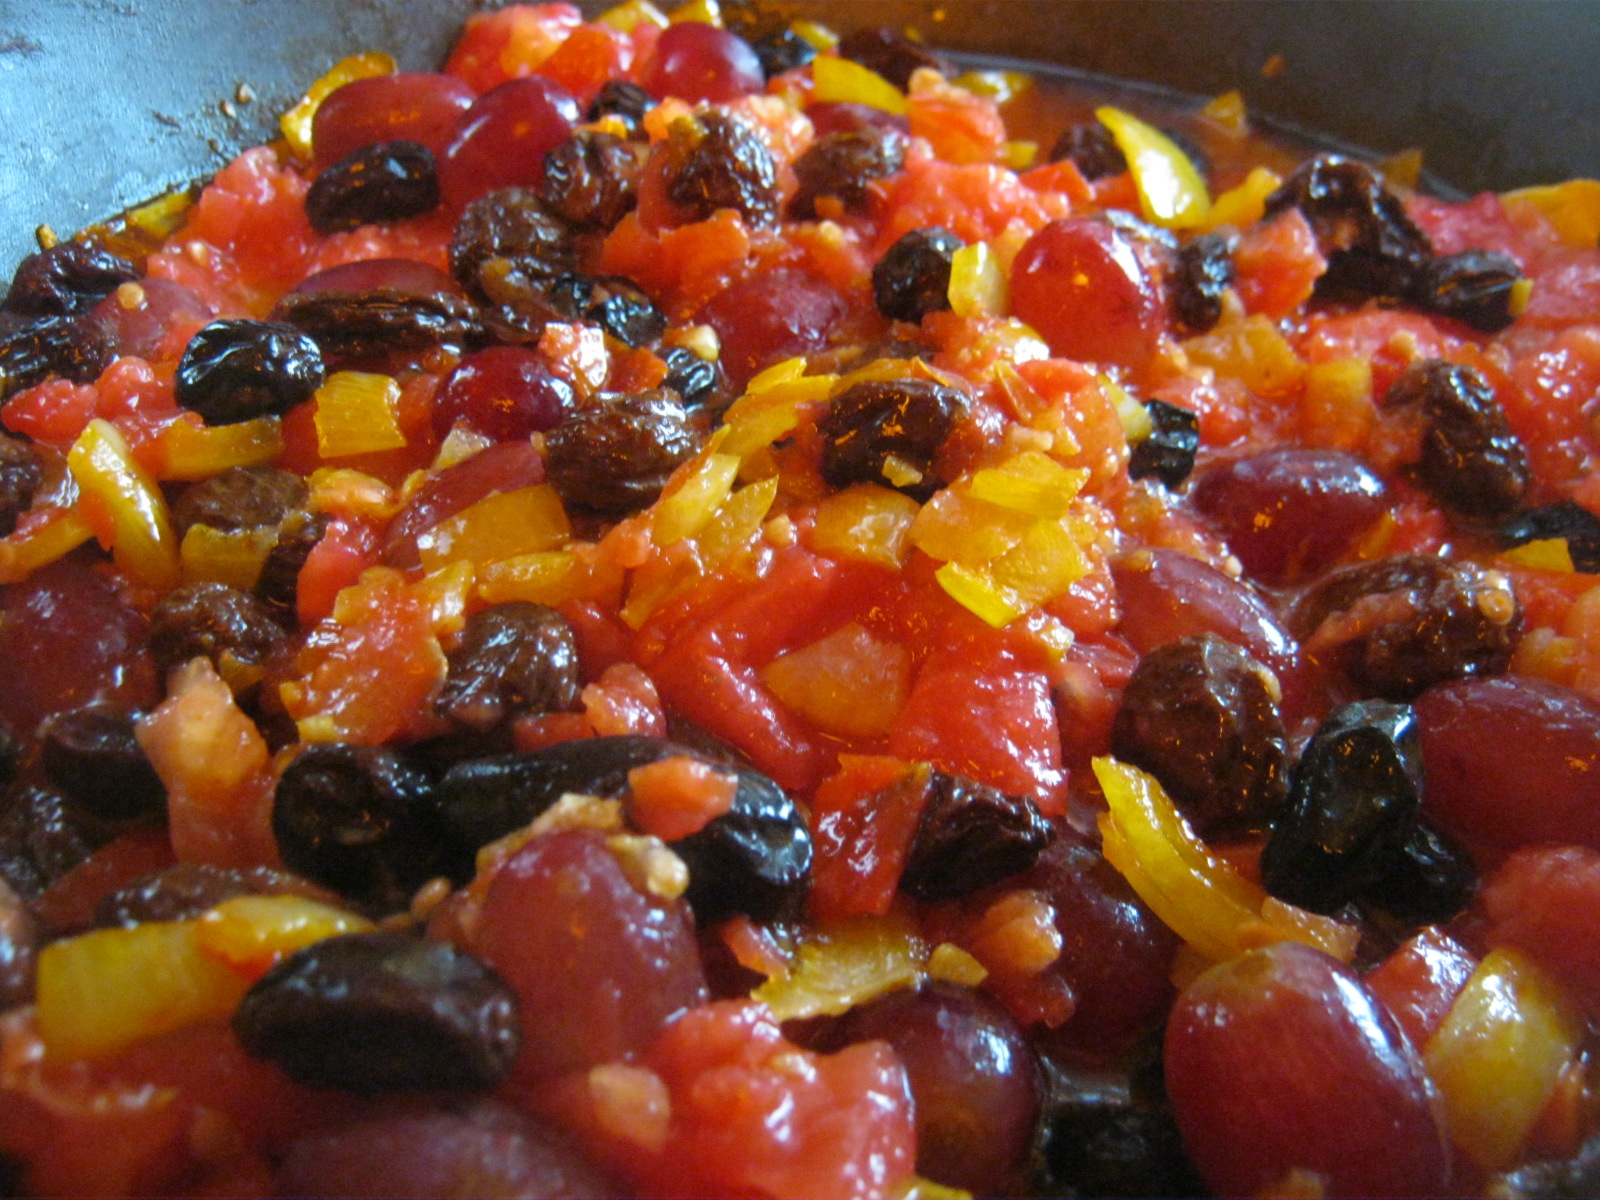 Fruits like these used in our Cape vegetable casserole are often a good addition to the diet